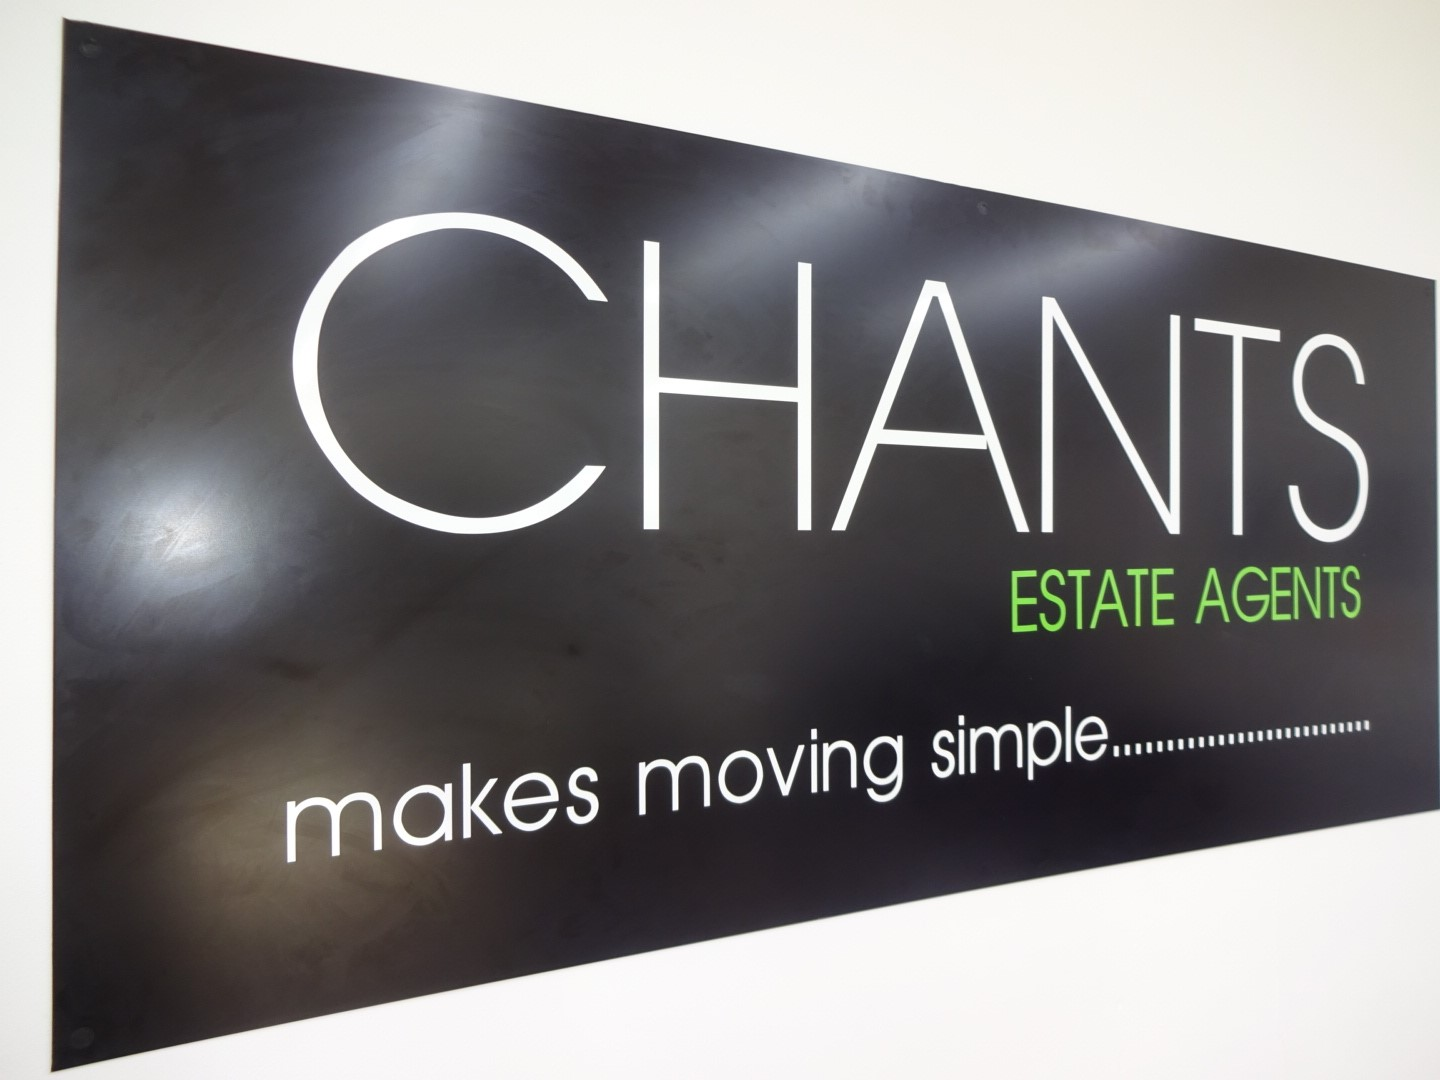 Chants Office Relocation